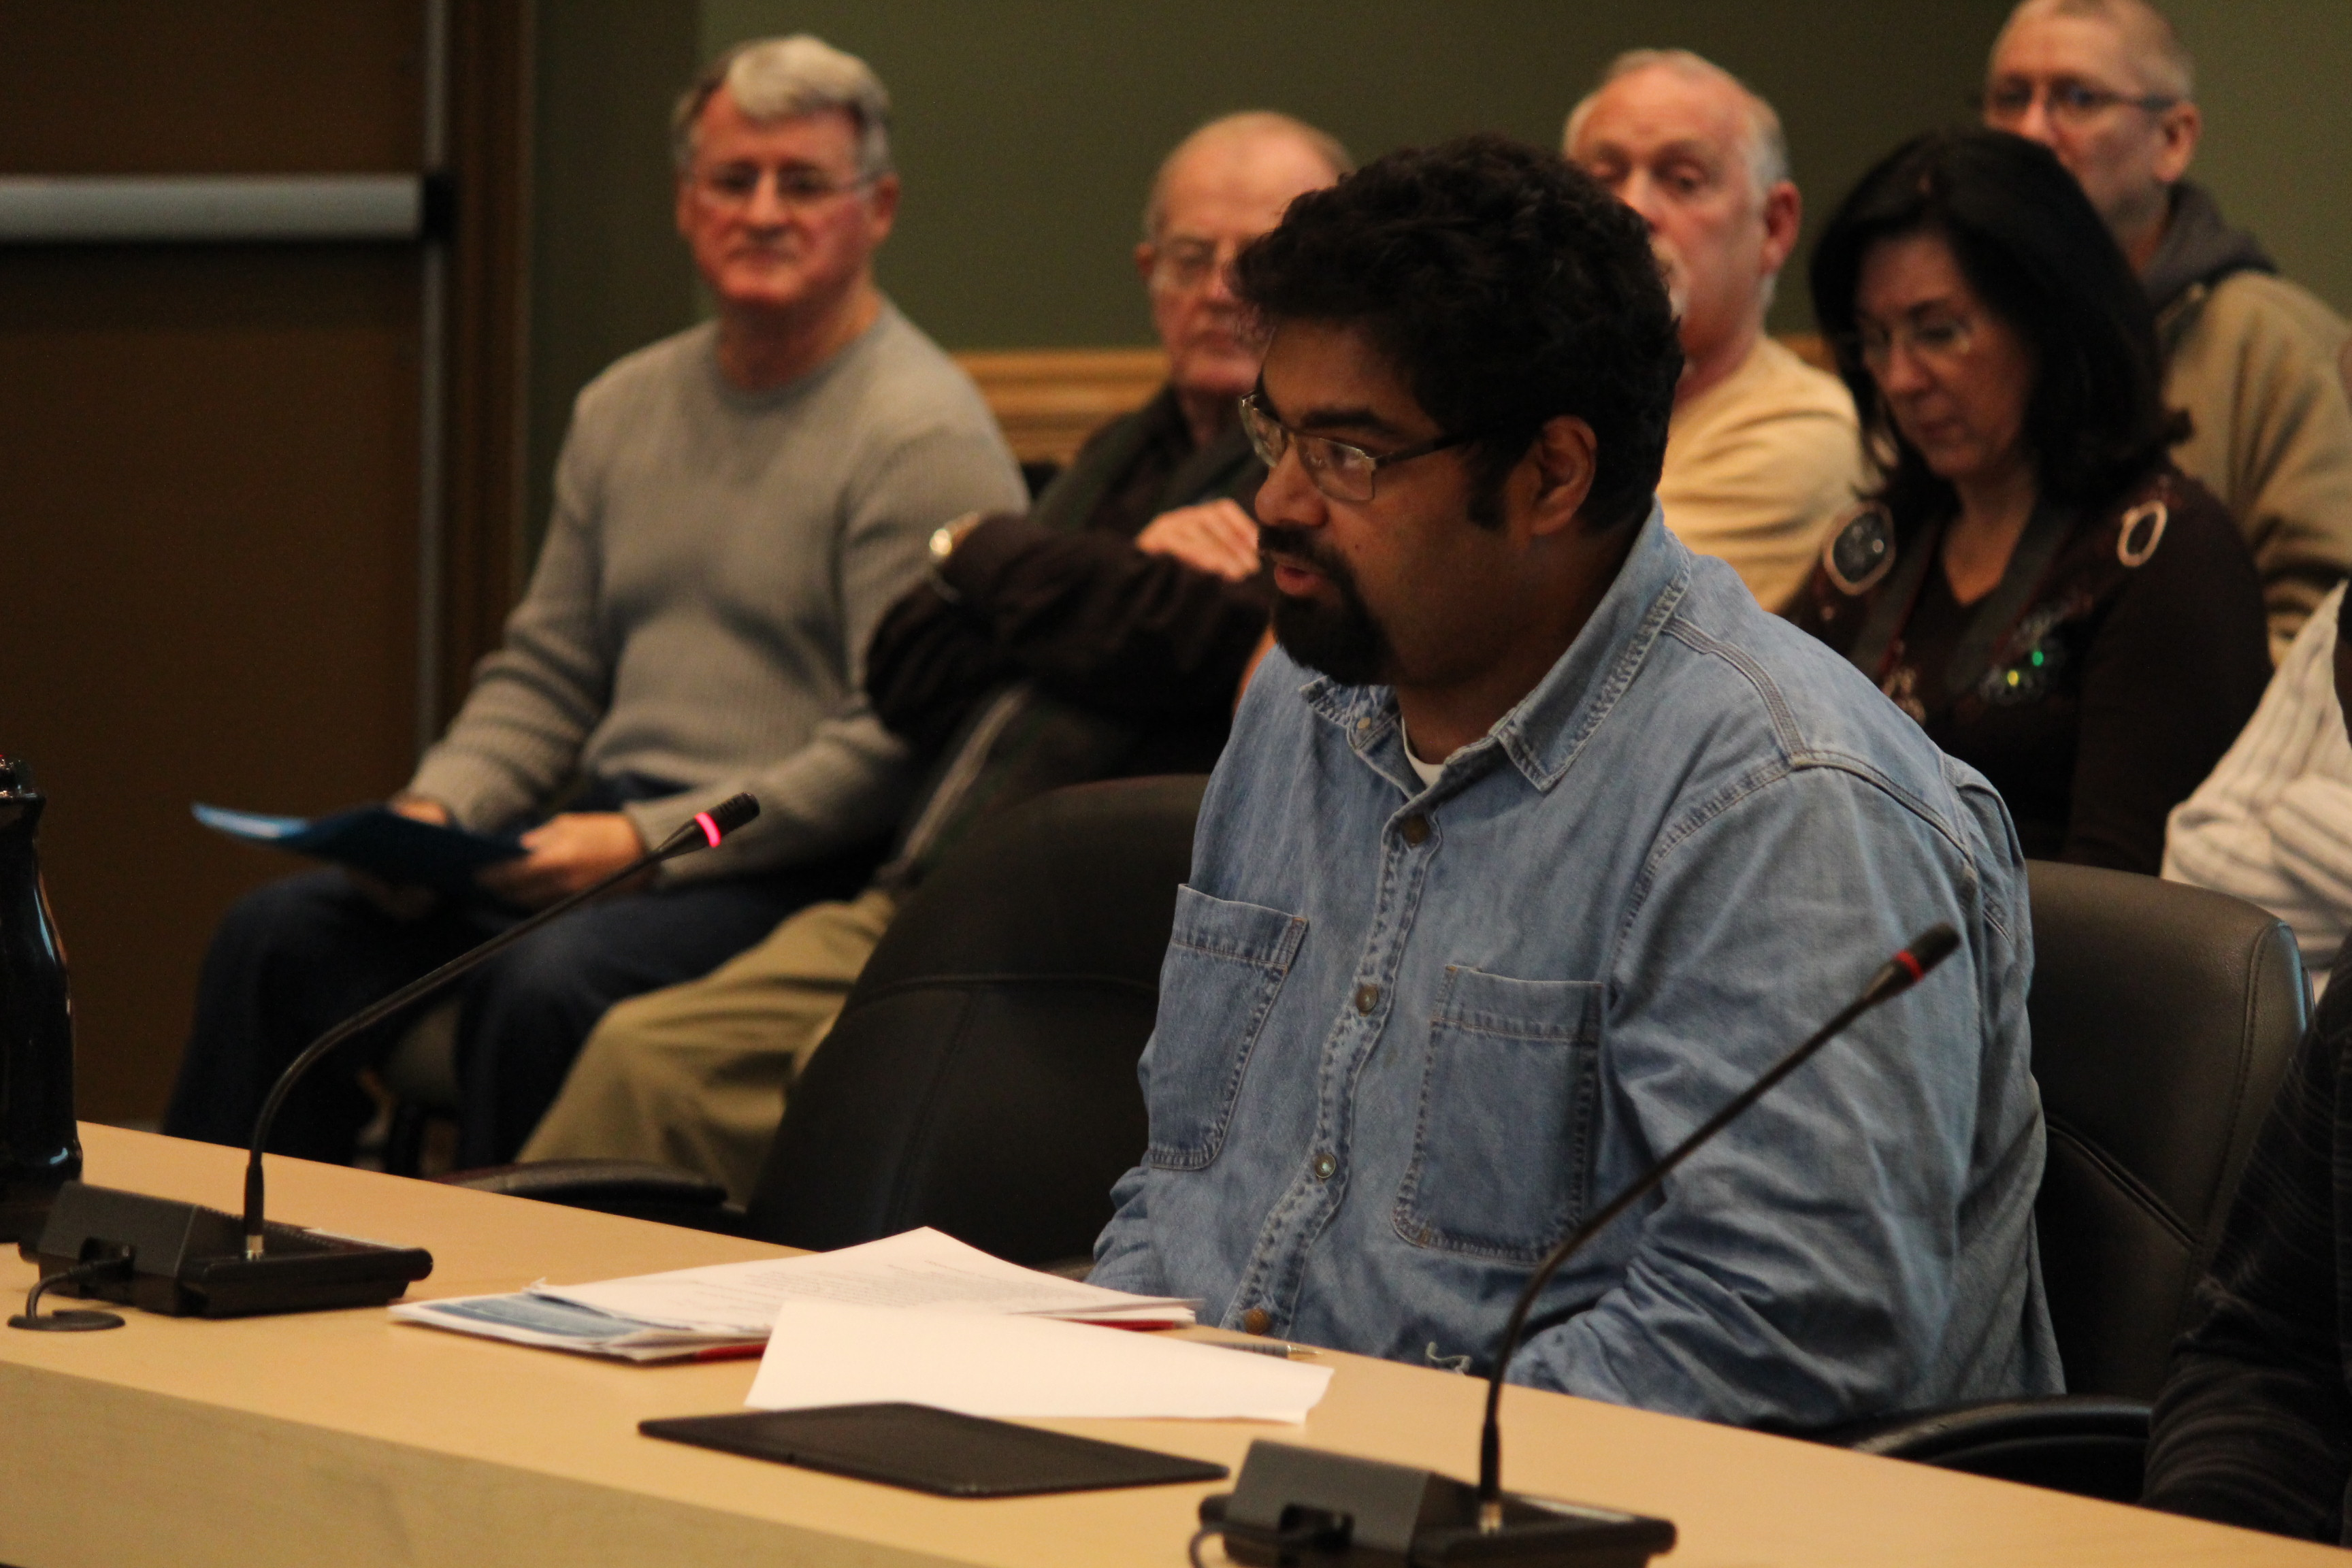 Justice For Migrant Workers Spokesperson Chris Ramsaroop speaking at Tecumseh Town Hall, January 13, 2015. (Photo by Mike Vlasveld)